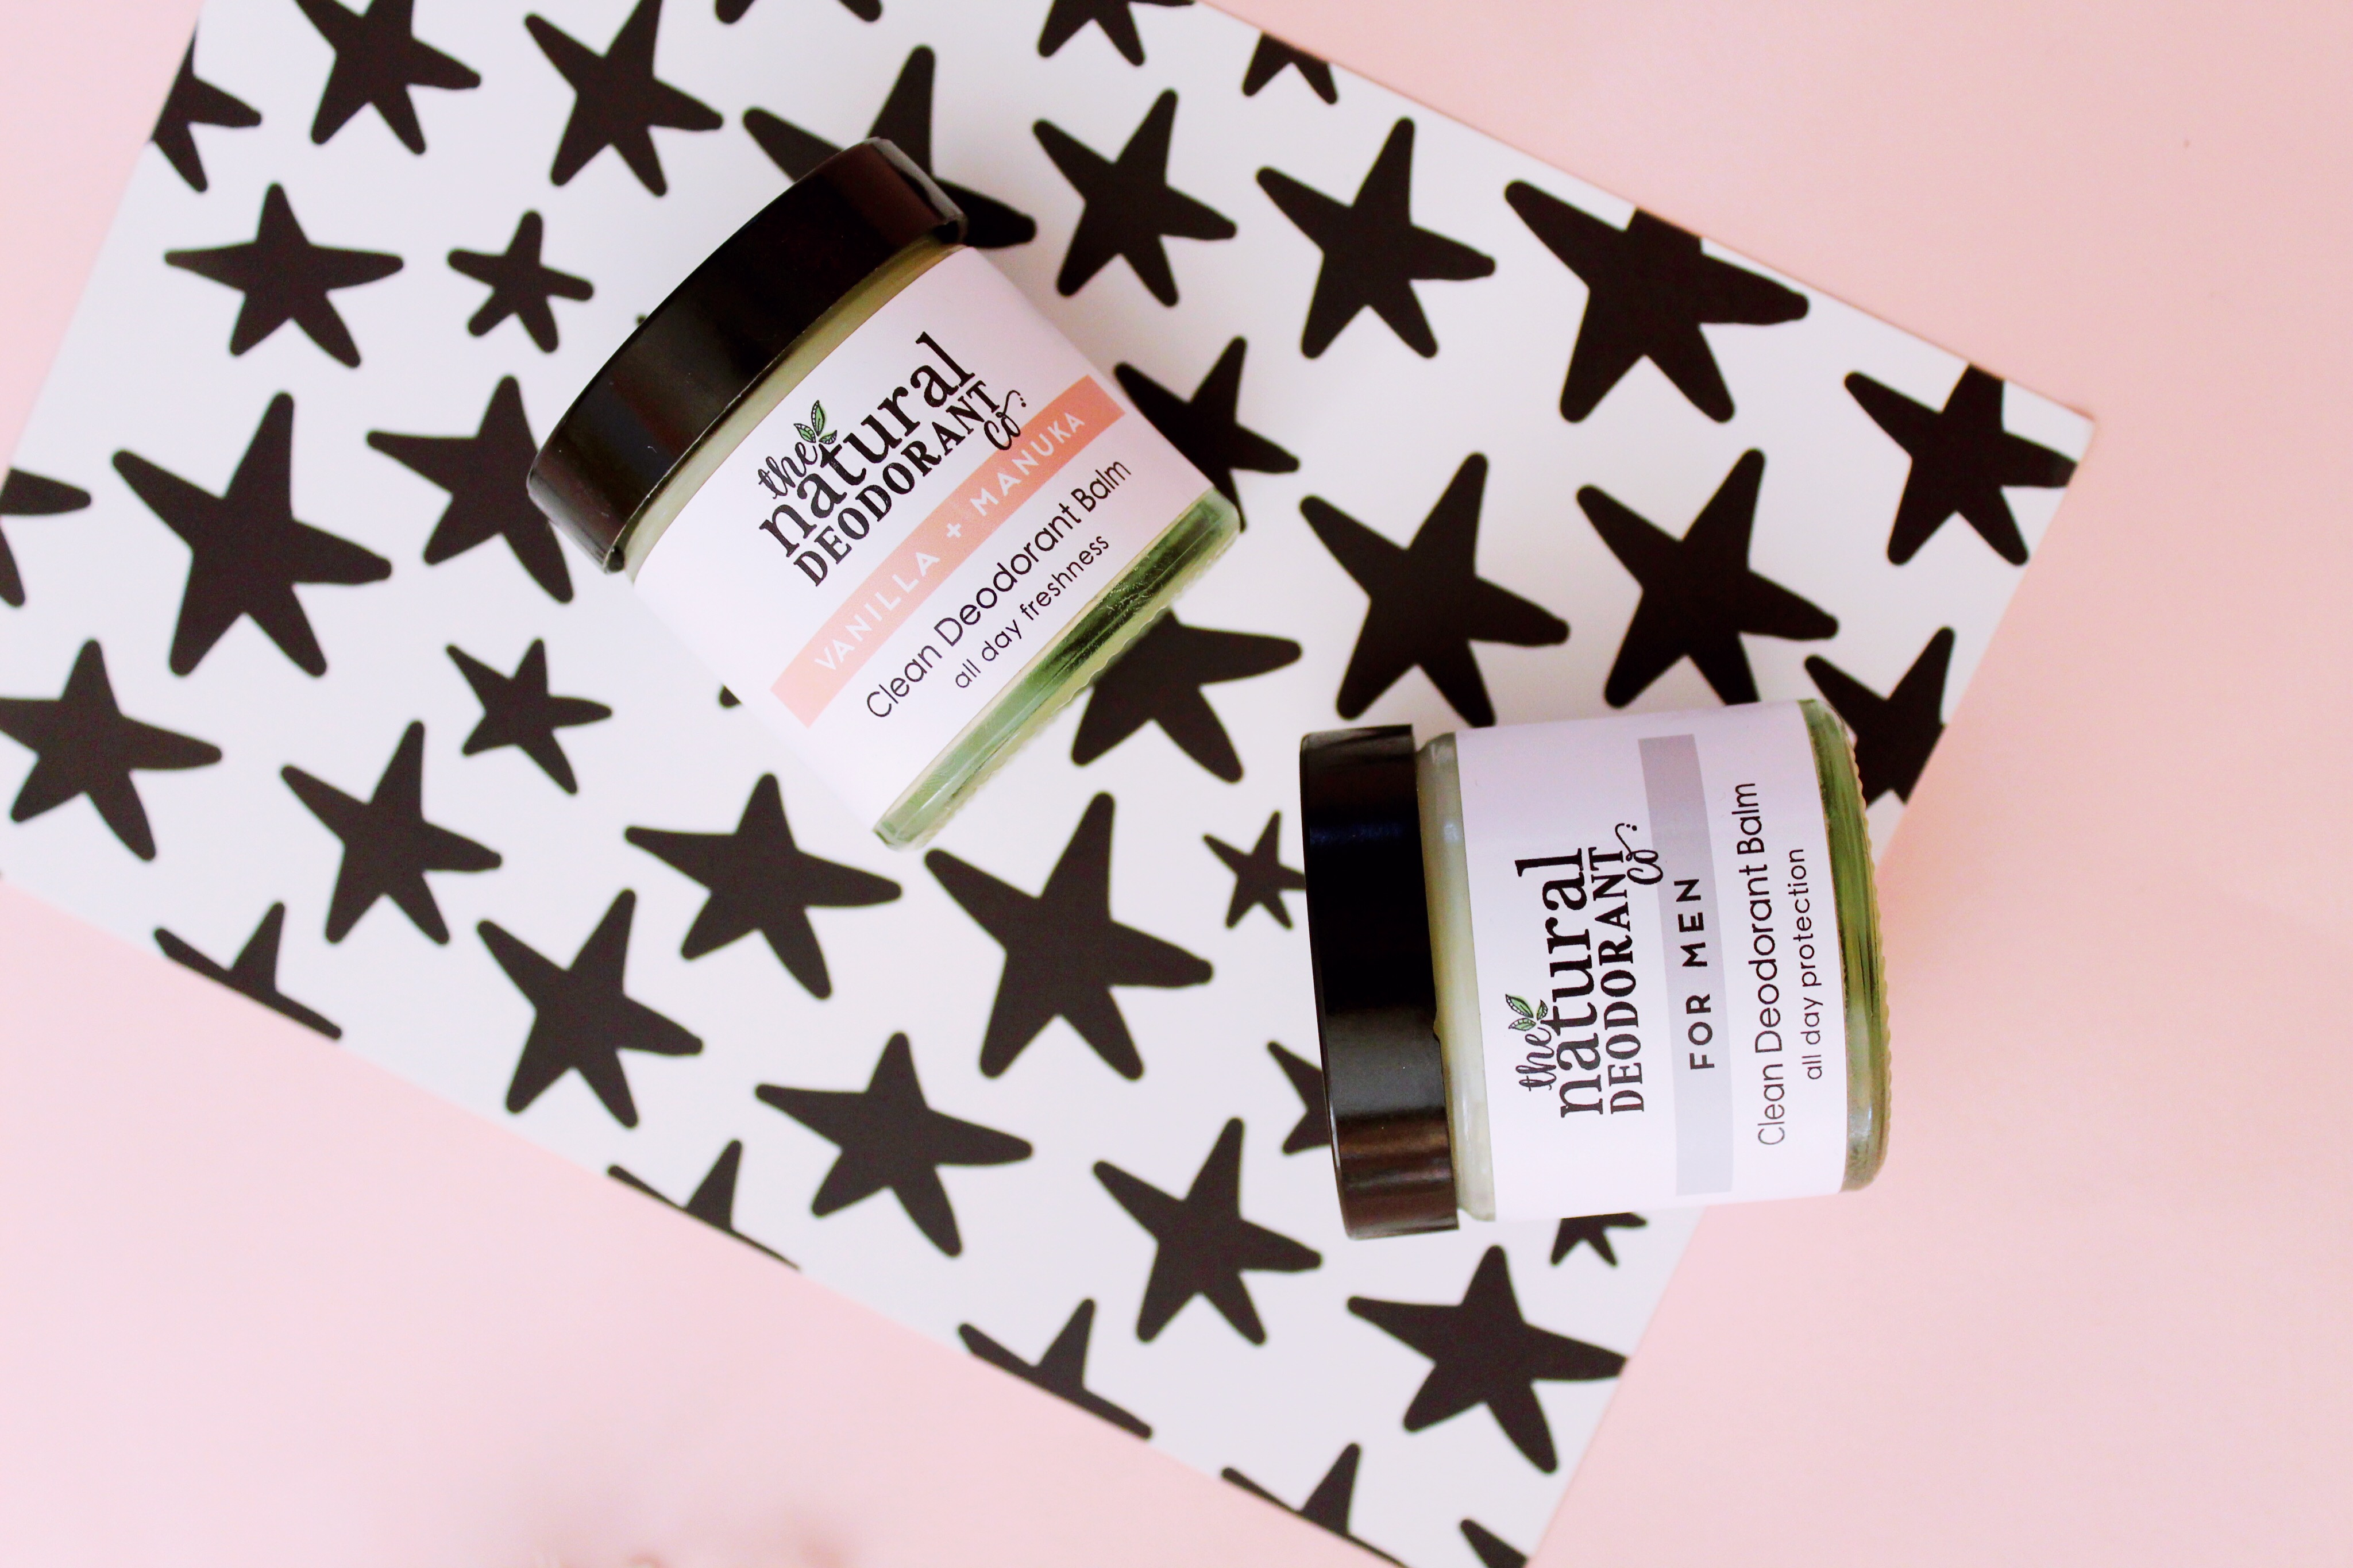 review - the natural deodorant company - cruelty-free and vegan deodorants